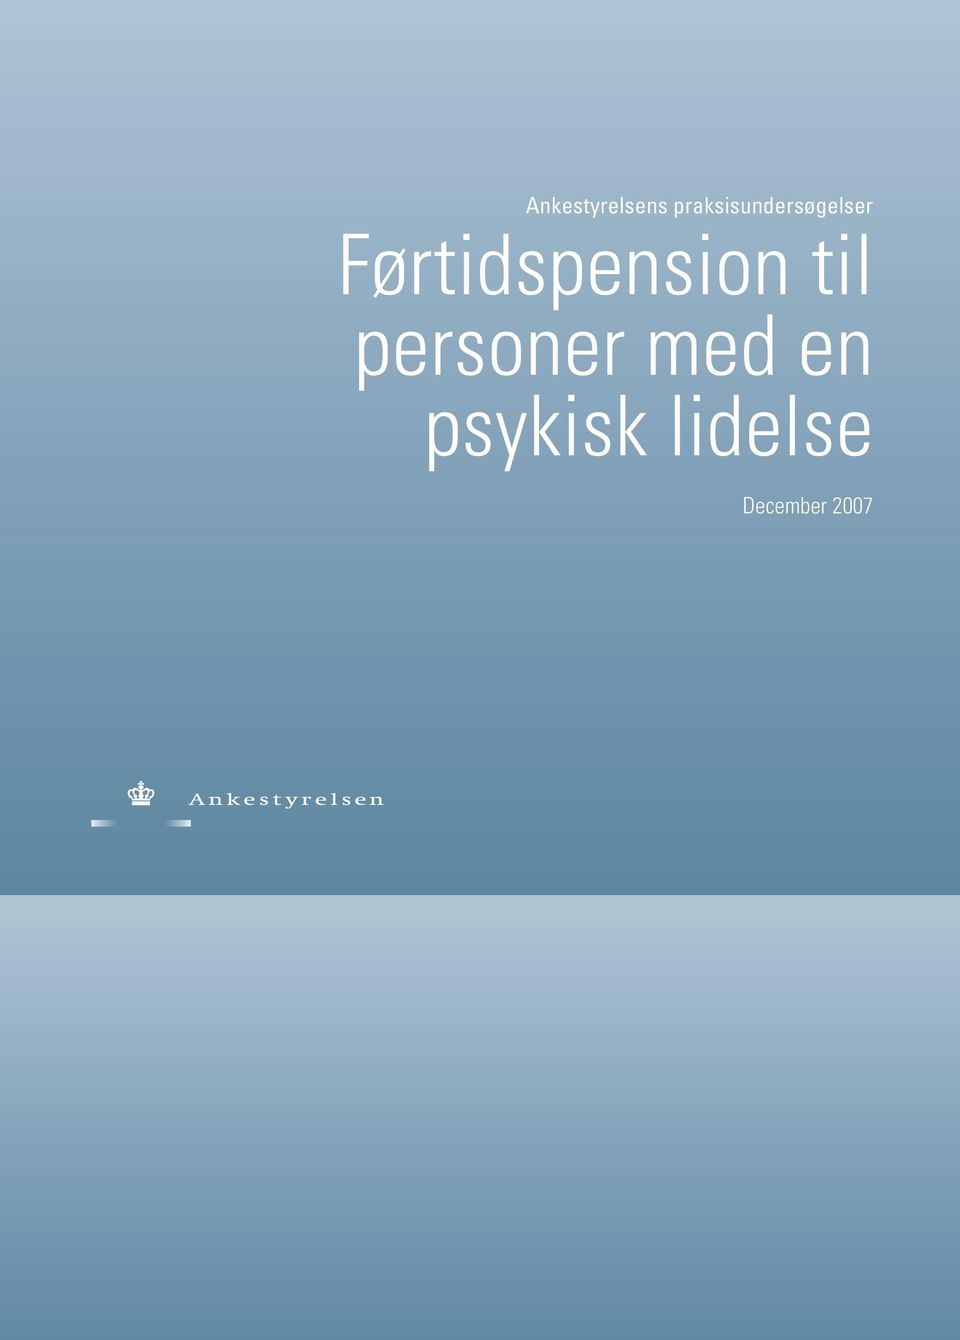 Førtidspension til